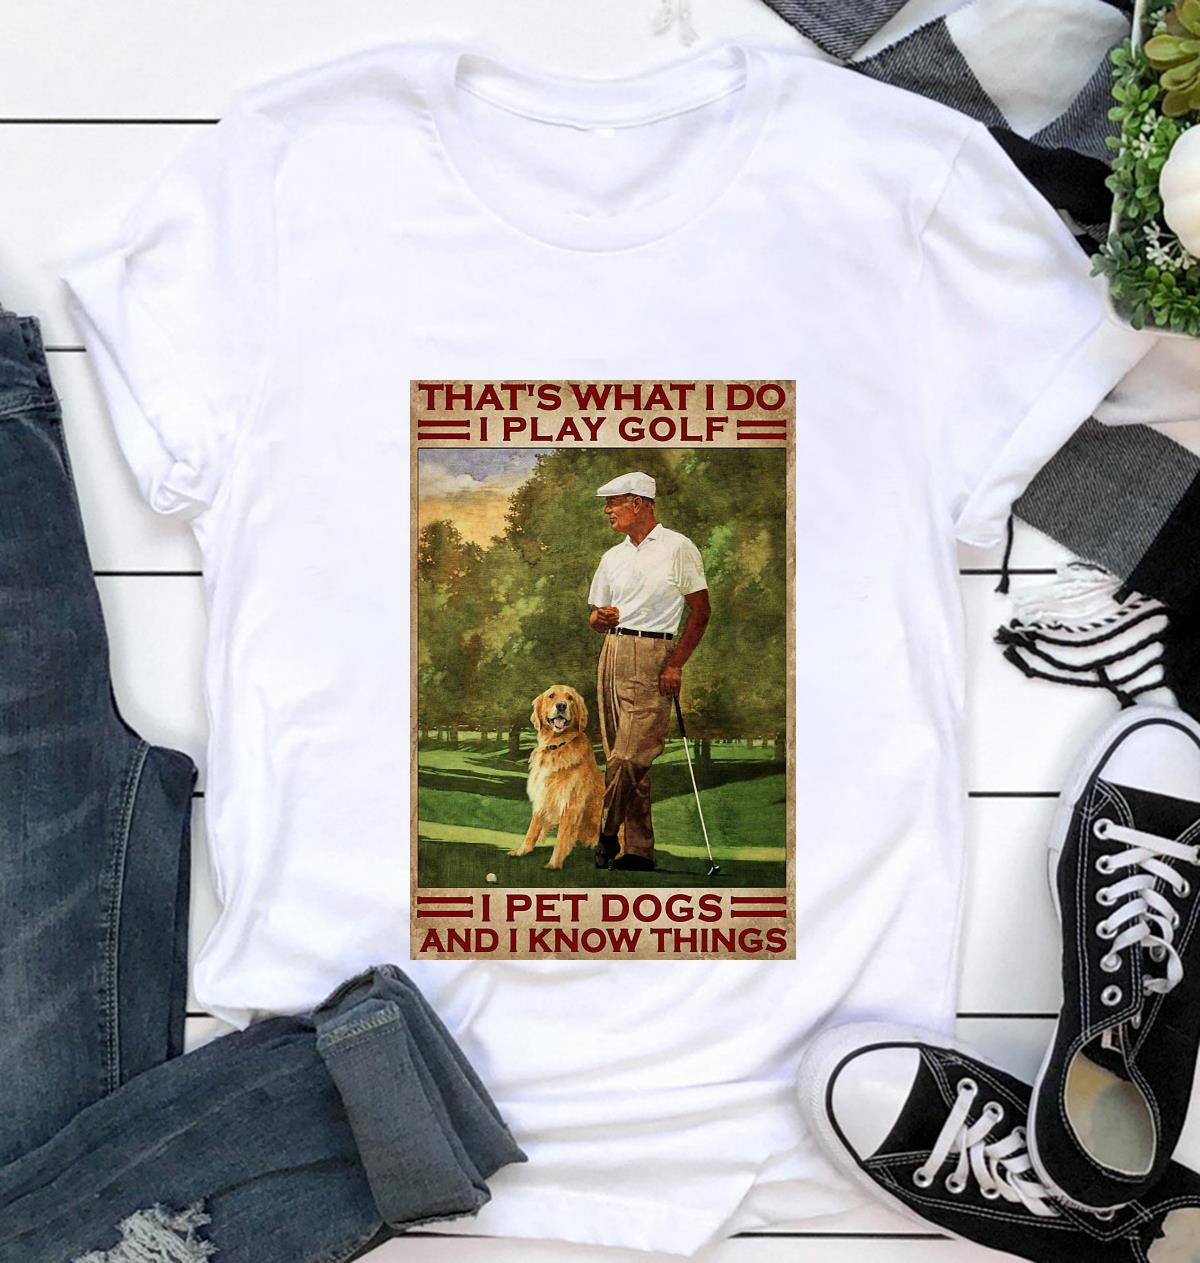 That's what I do I play golf pet dogs and know things poster canvas t-shirt